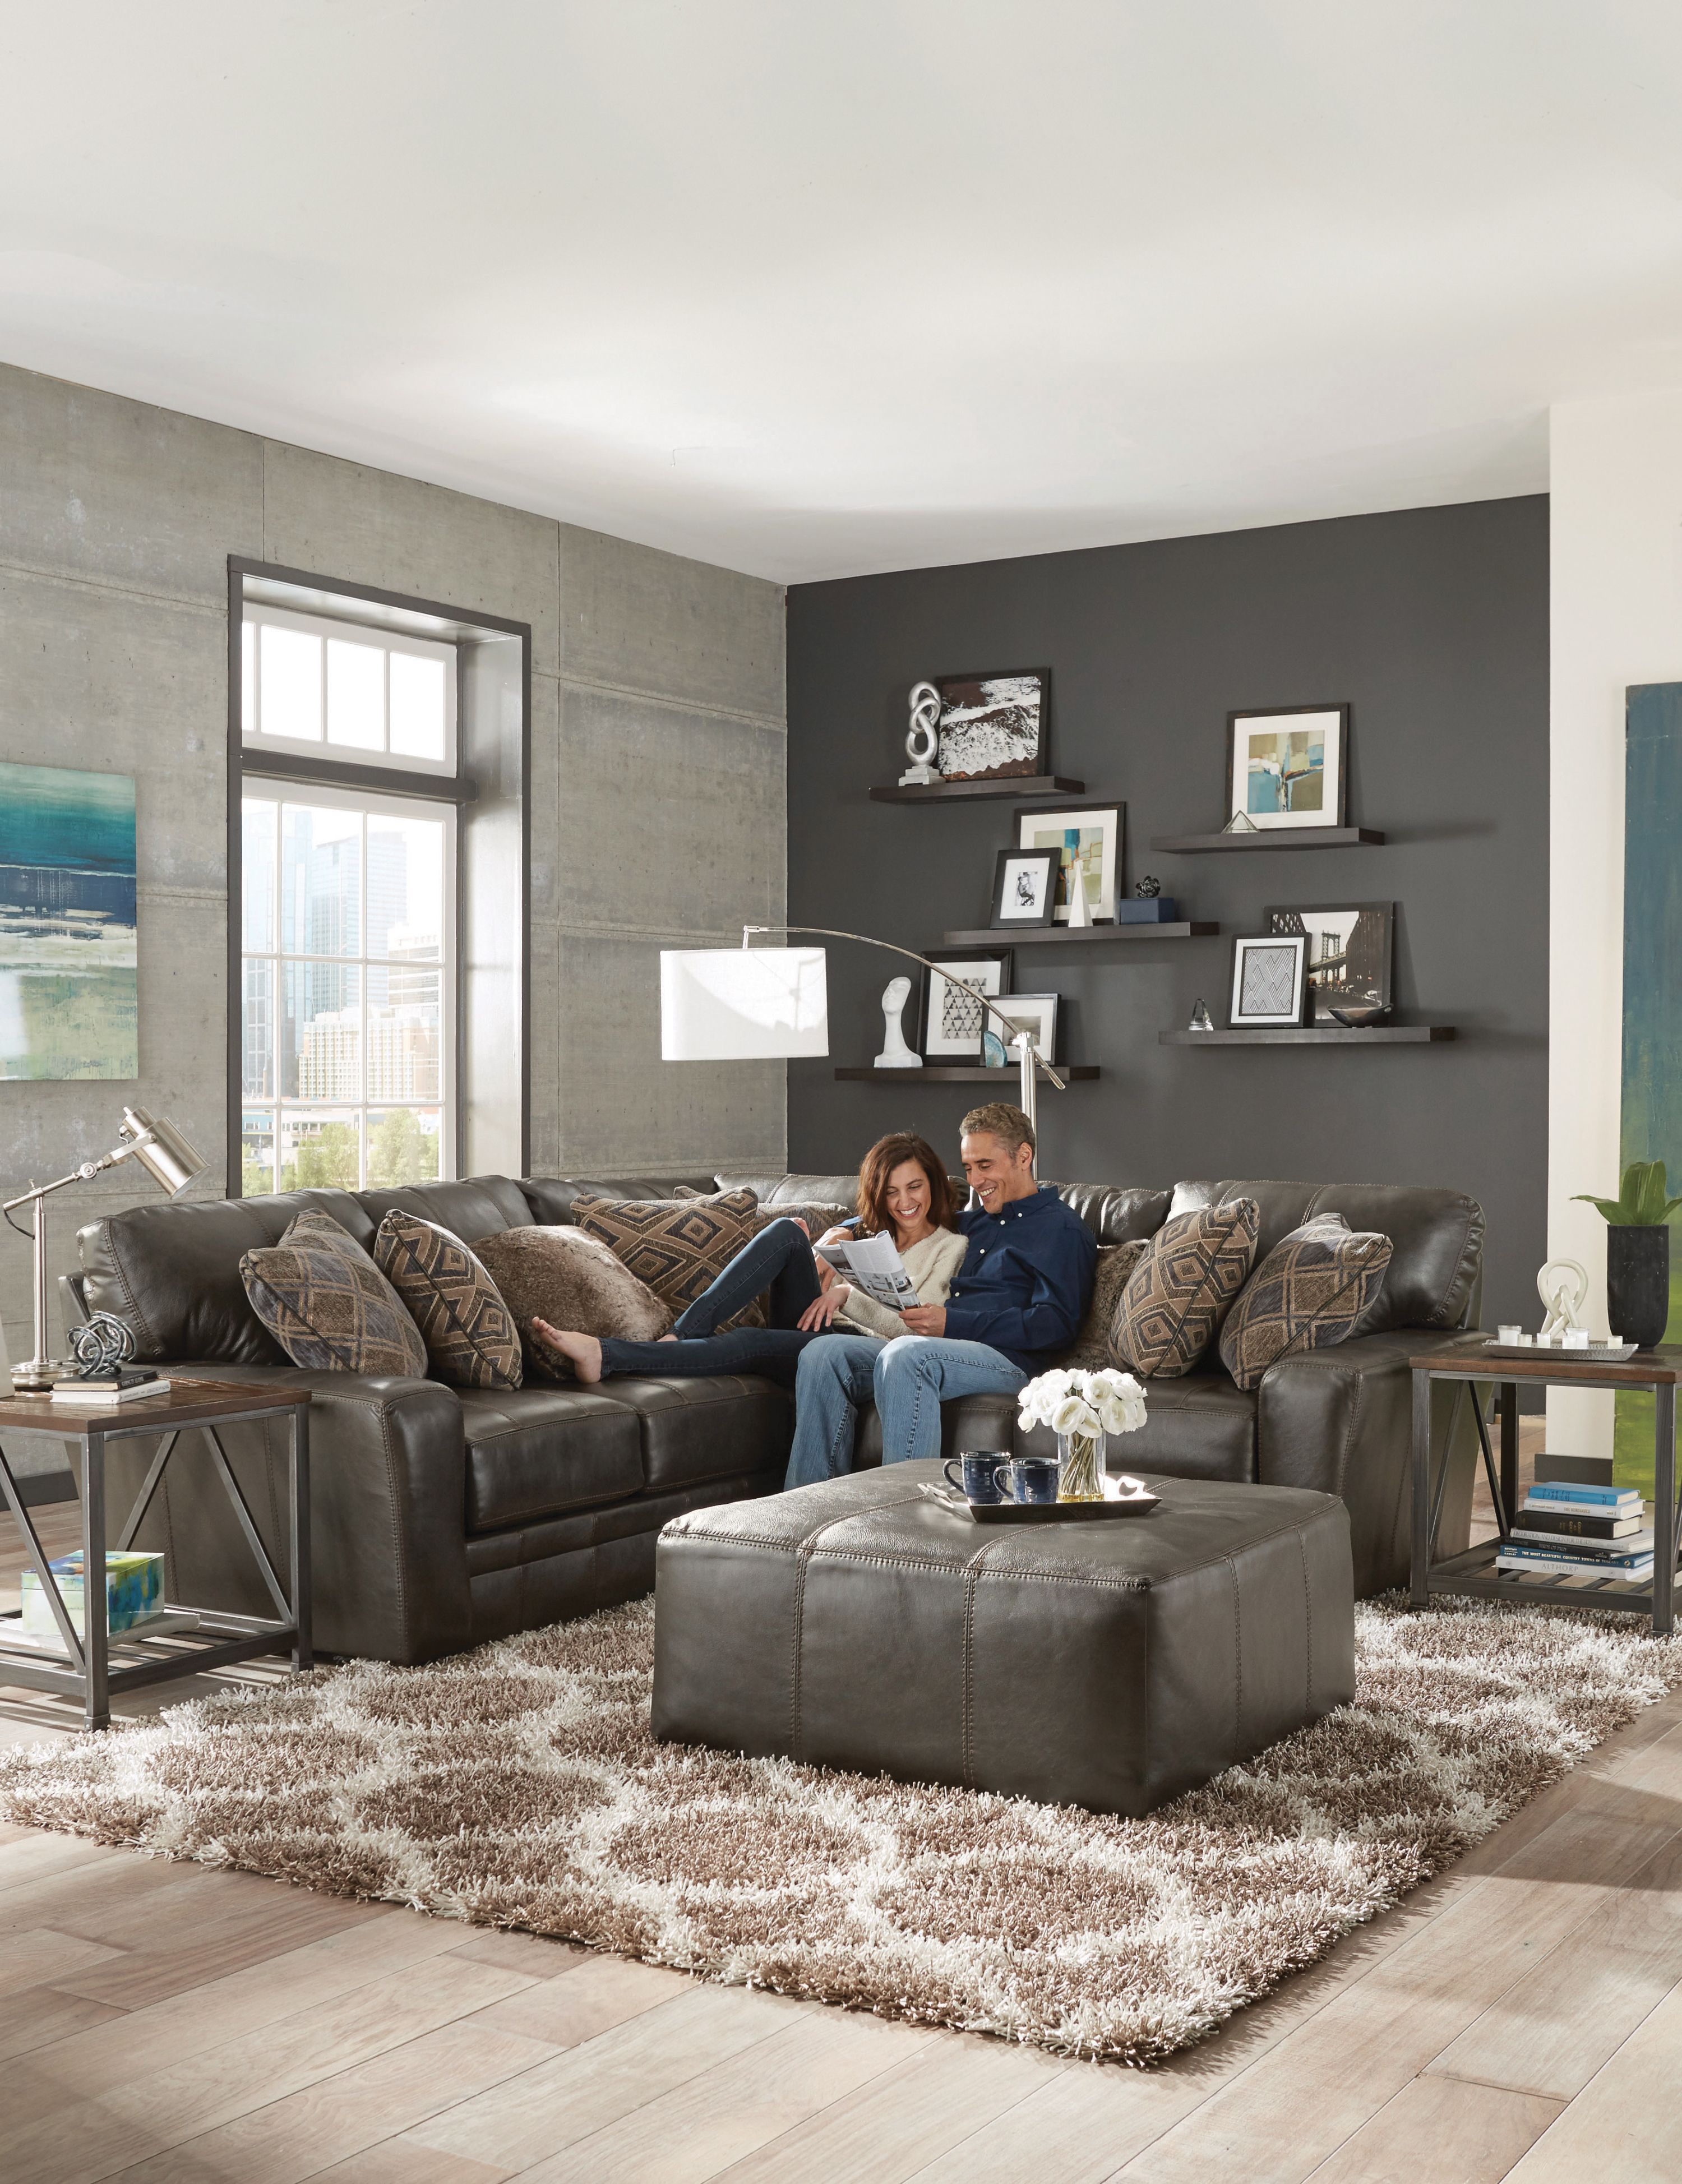 Denali Is A Modular Sectional In Genuine Top Grain Italian Leather Match With Decorative Luggage Stitching Offering To Jackson Furniture Furniture Sofa Design